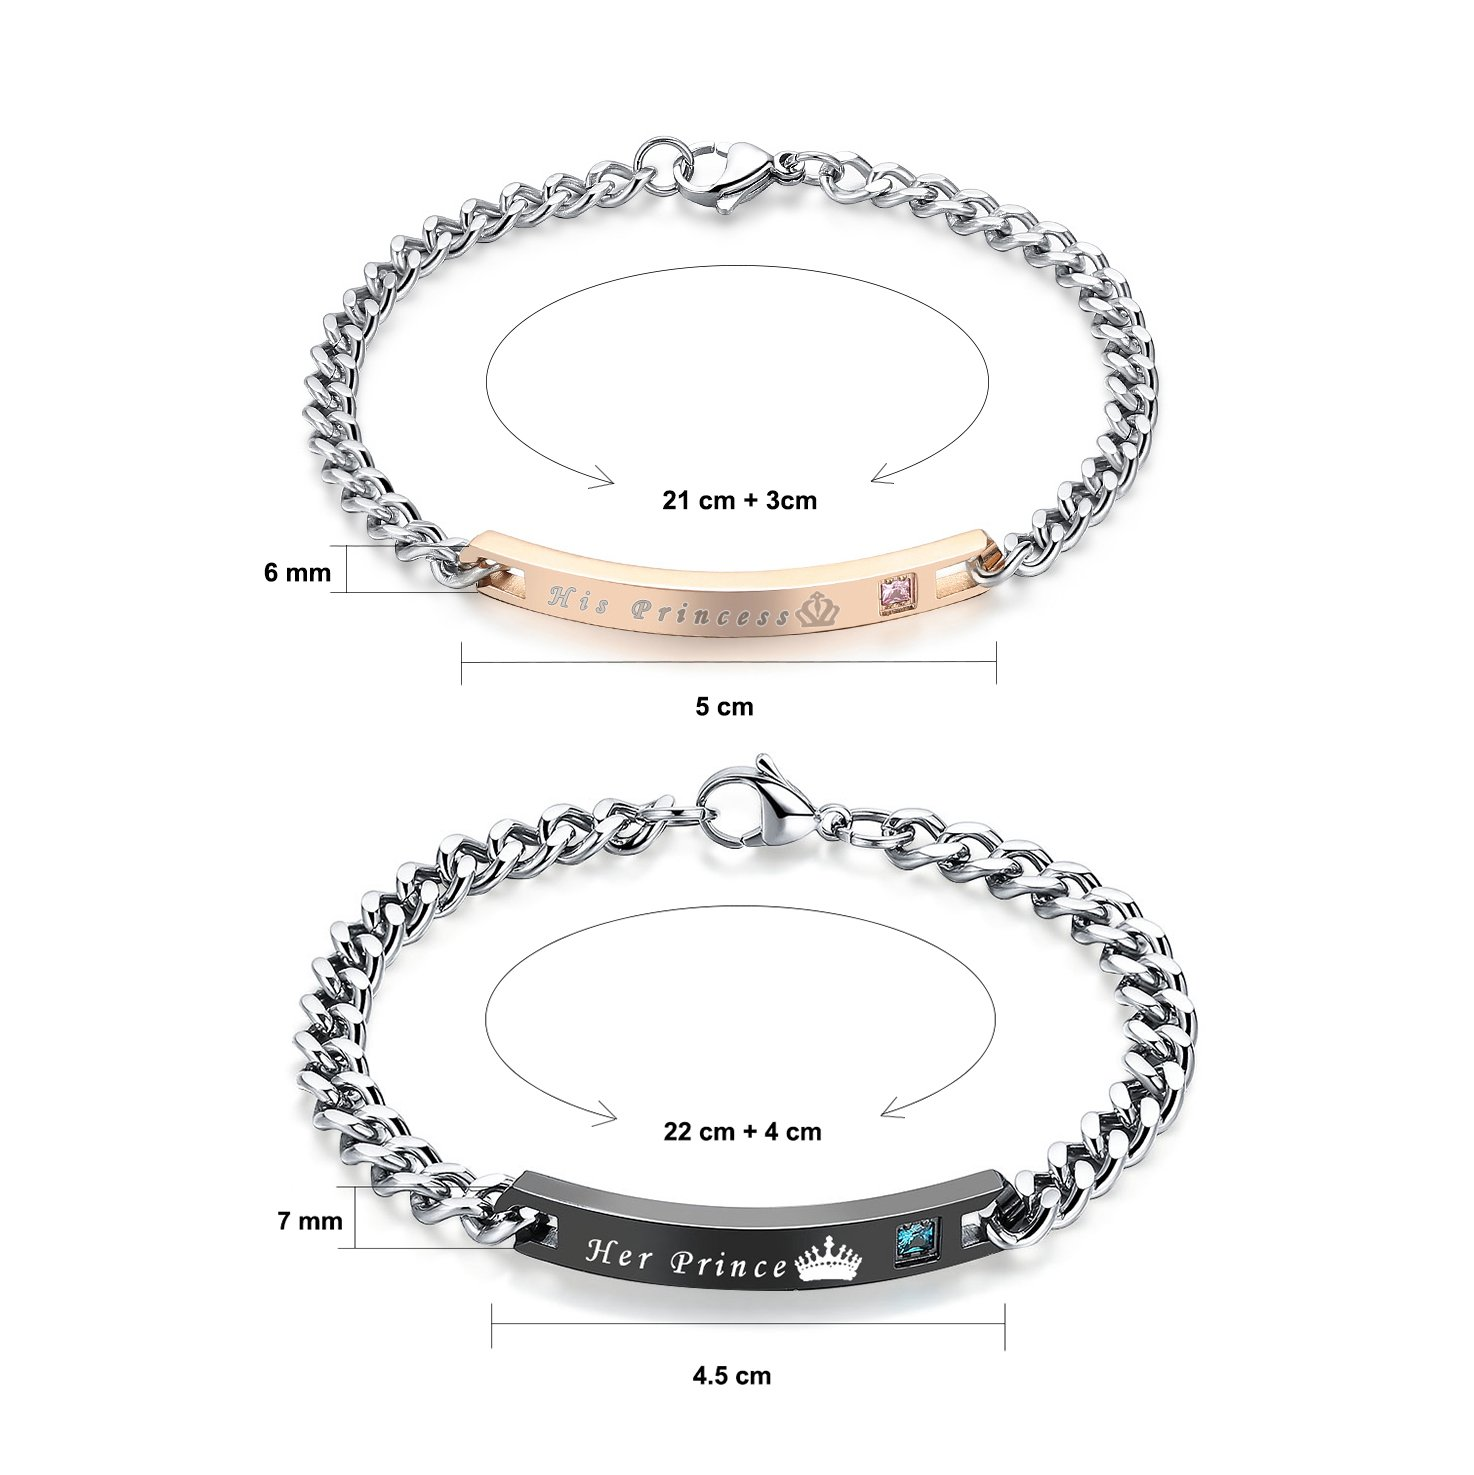 Gagafeel His Hers Matching Set Titanium Stainless Steel His Queen Her King Couple Bracelet 2 pcs with Gift Box (His Princess Her Prince)